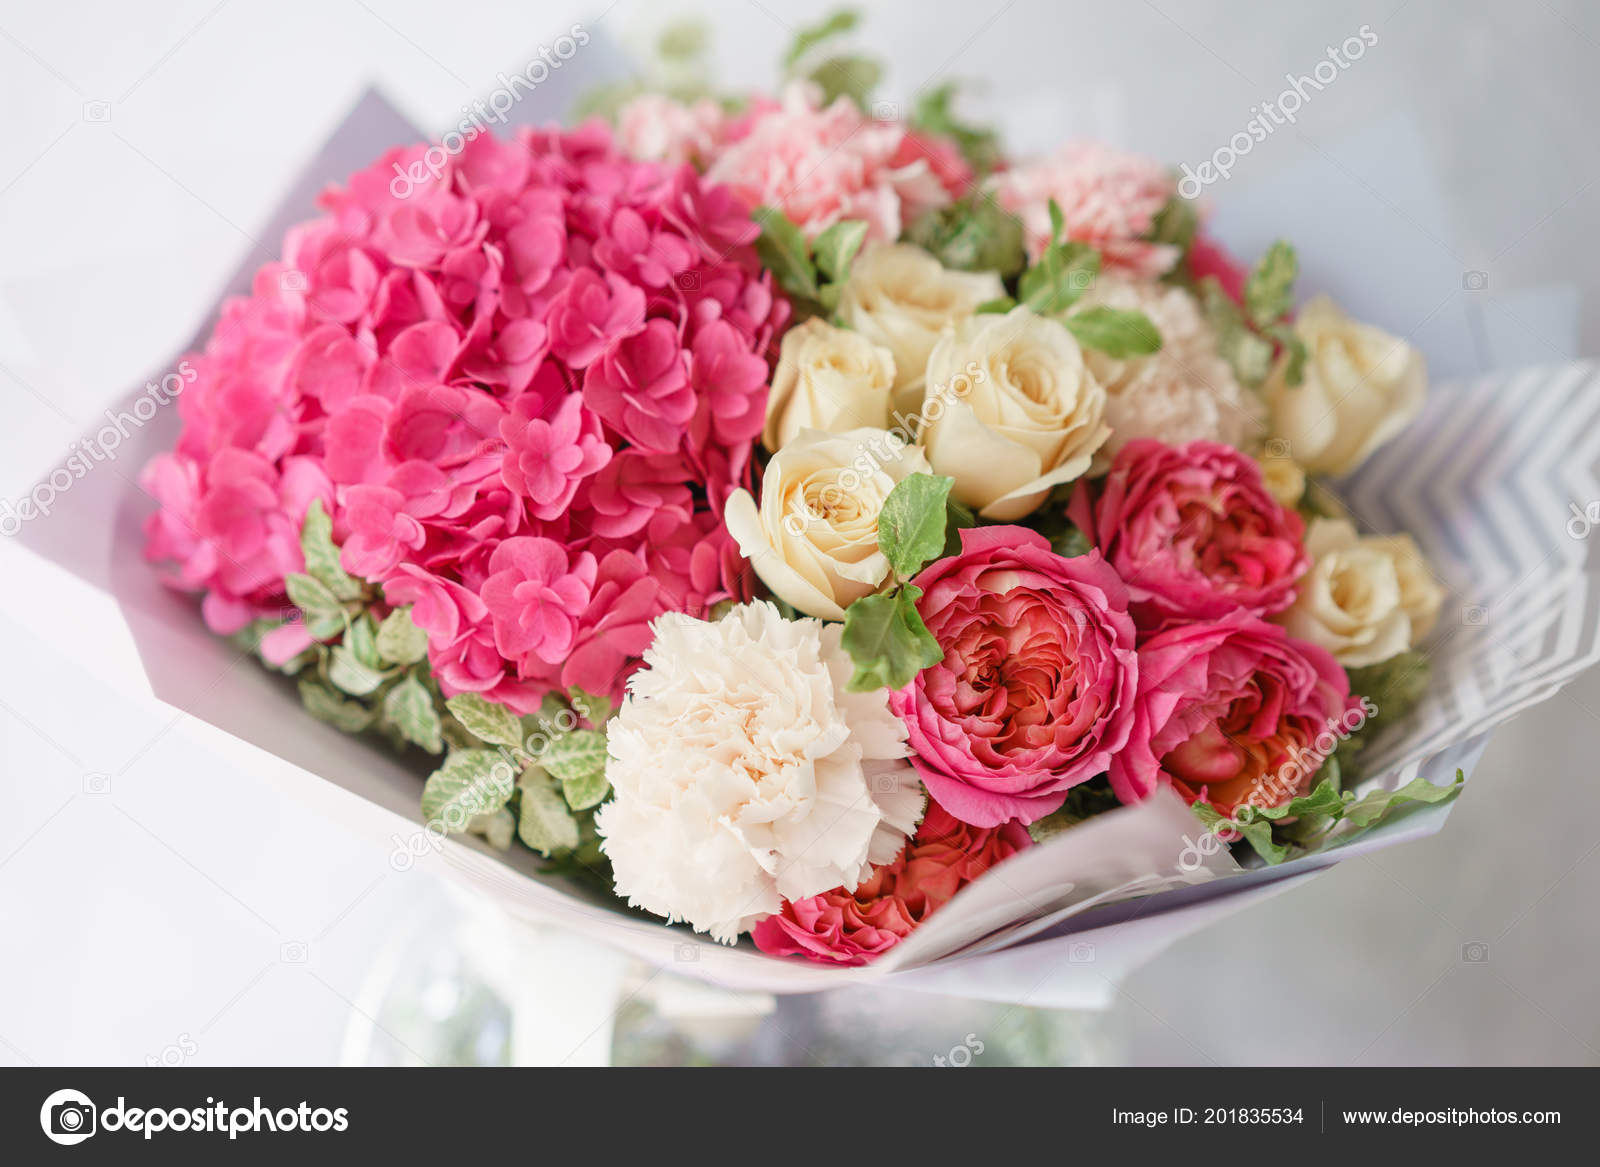 Beautiful Spring Bouquet Flower Arrangement With Hydrangea And